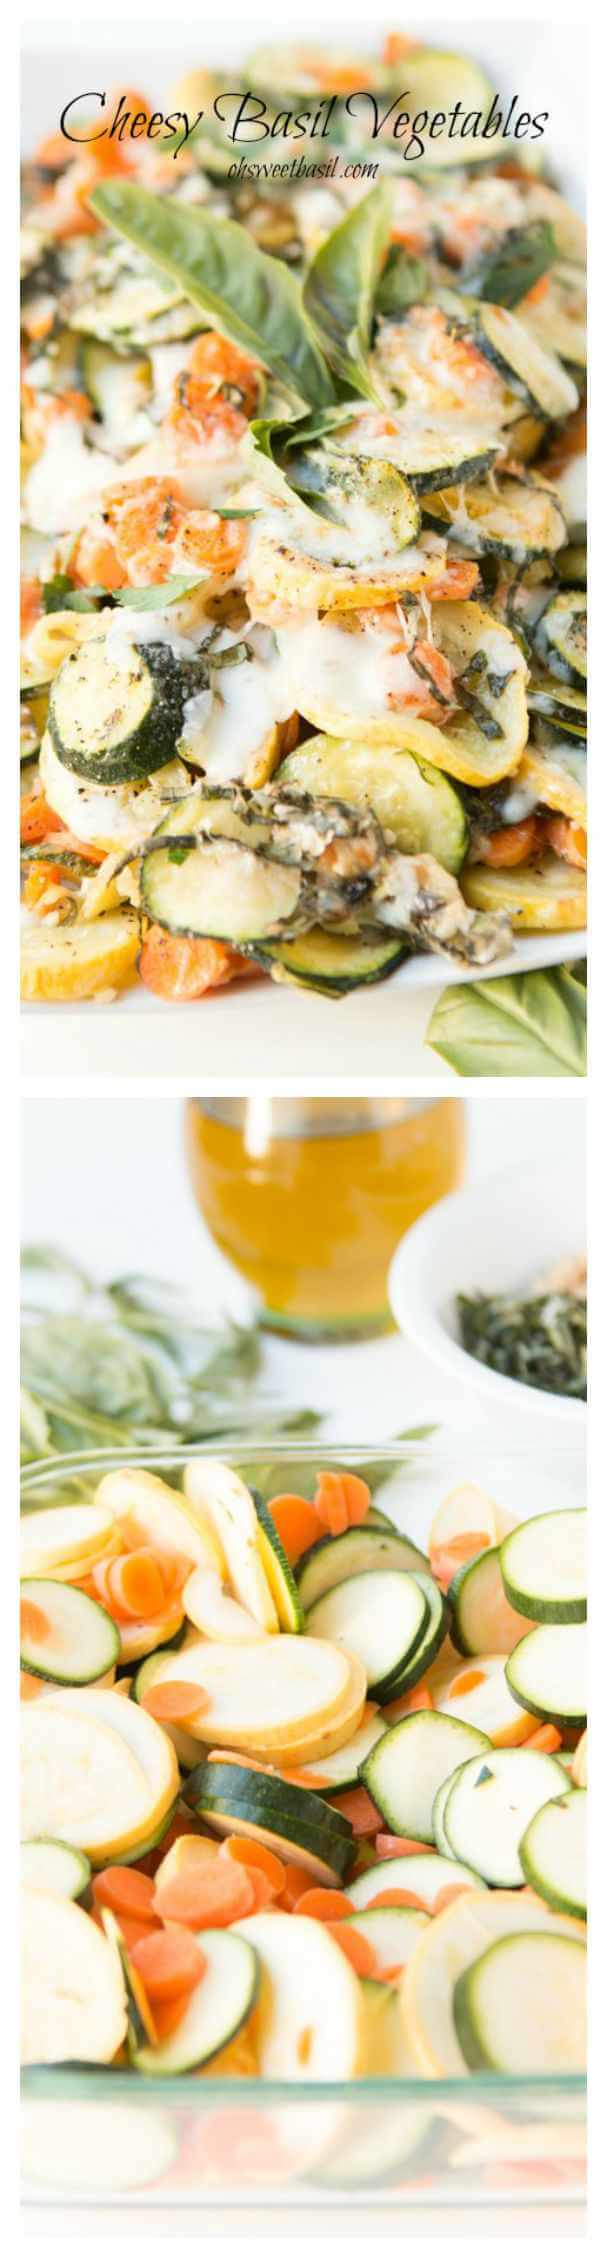 Want the best way to use up all of that squash and zucchini? Cheesy basil veggies! ohsweetbasil.com